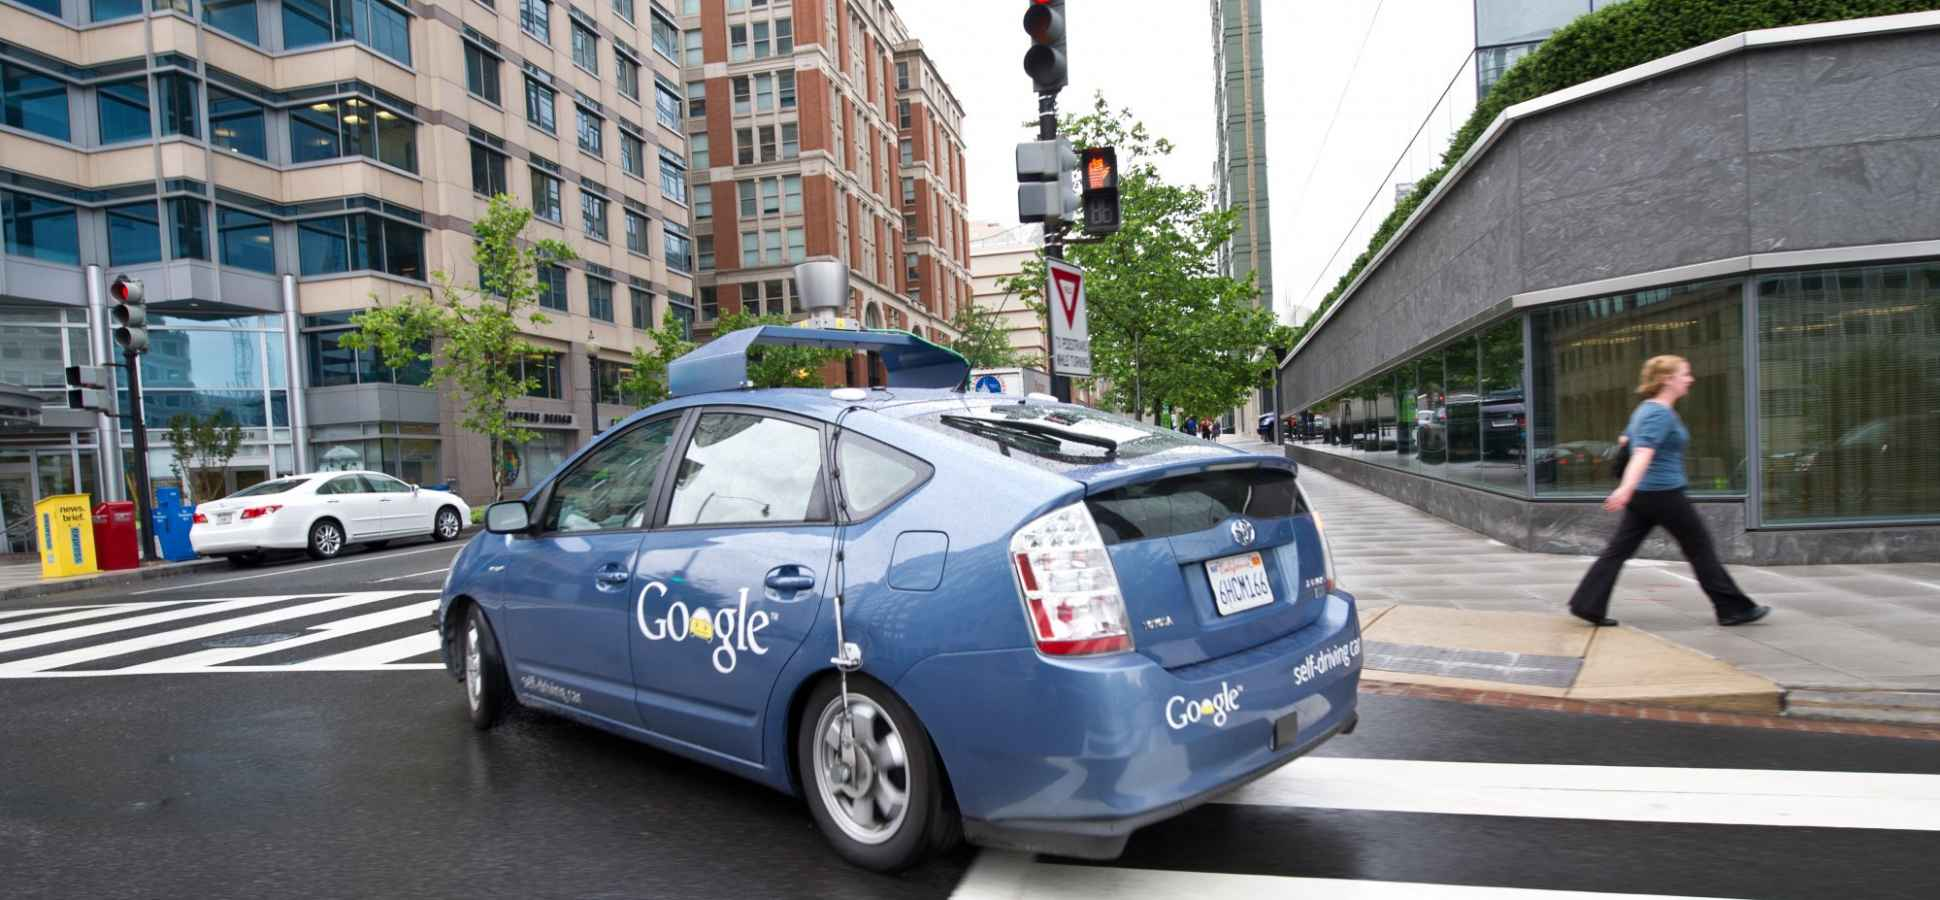 Self-Driving Cars Could Spell the End of the Taxi Industry